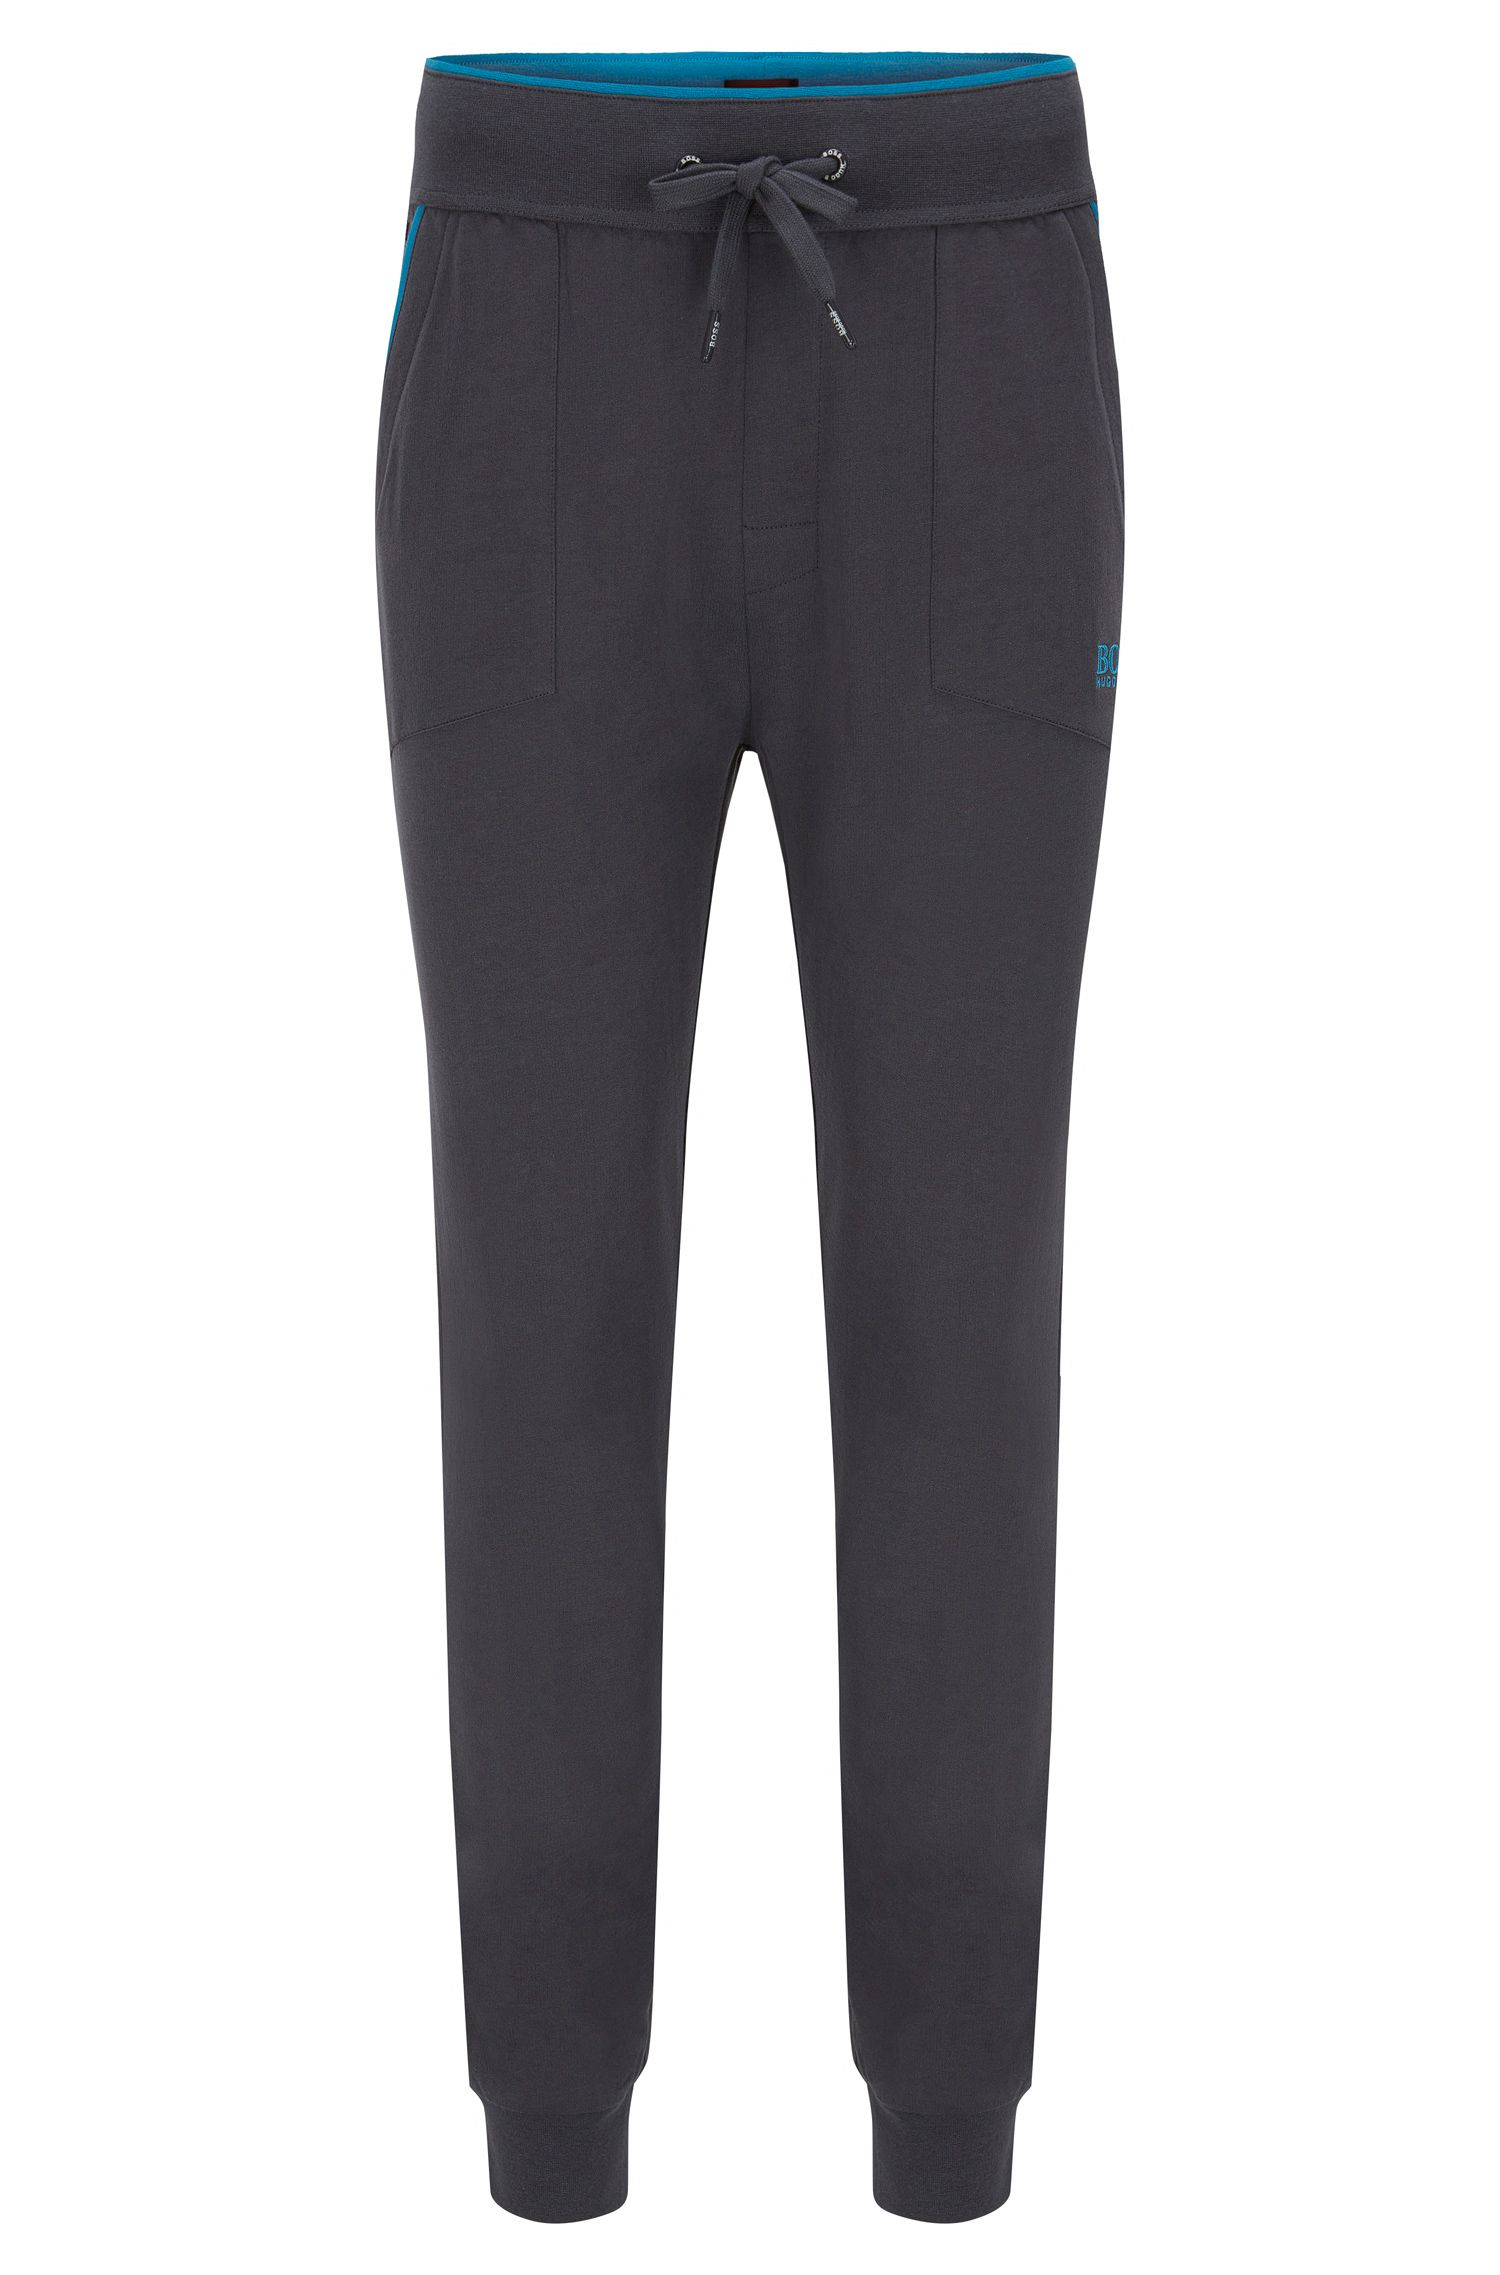 Jersey loungewear trousers with applied pockets and contrast piping